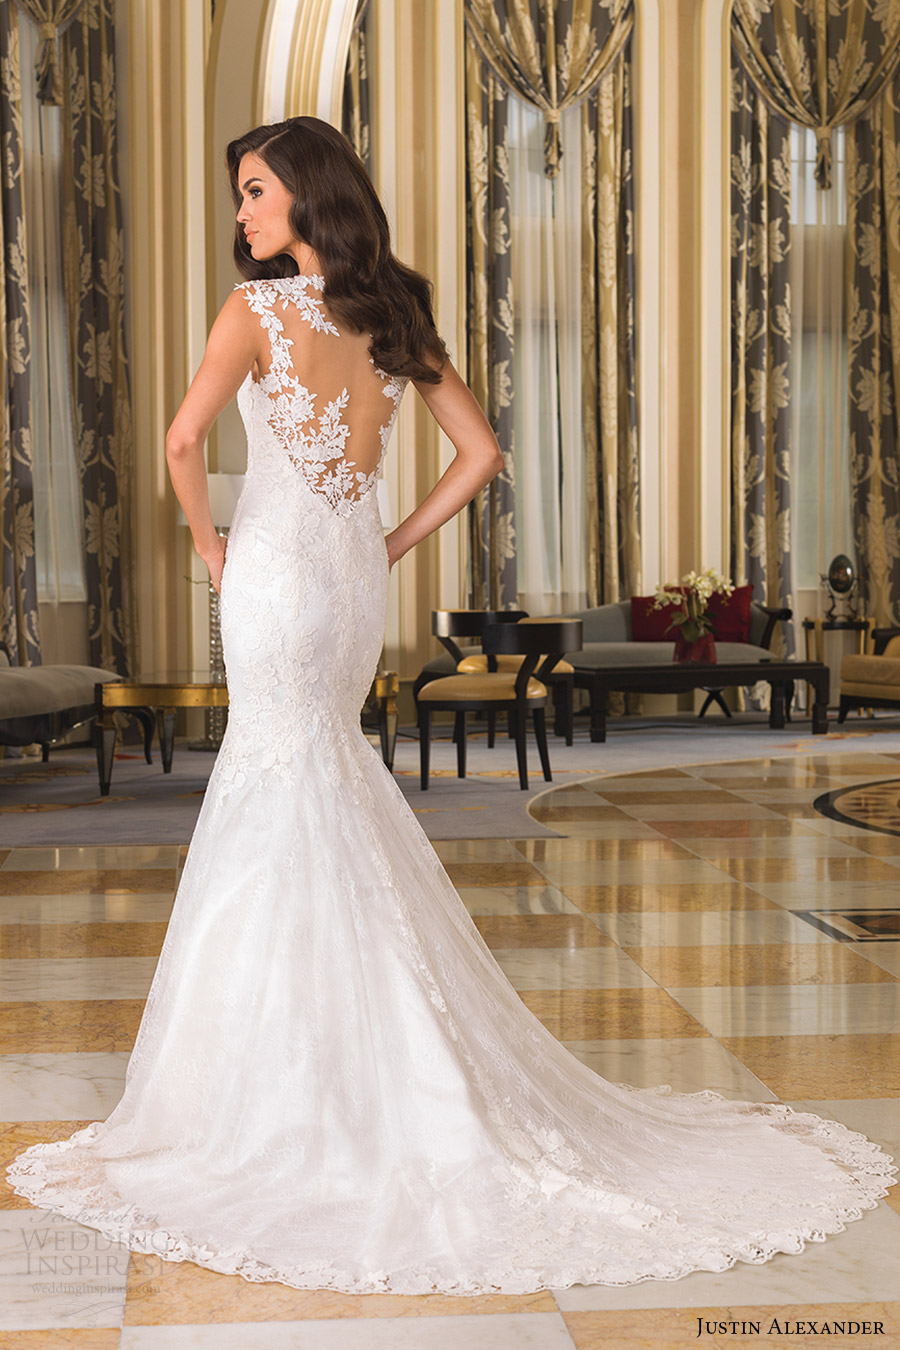 Justin Alexander Bridal Fall 2016 Cap Sleeves Vneck Fit Flare Chantilly Lace Wedding Dress 8858